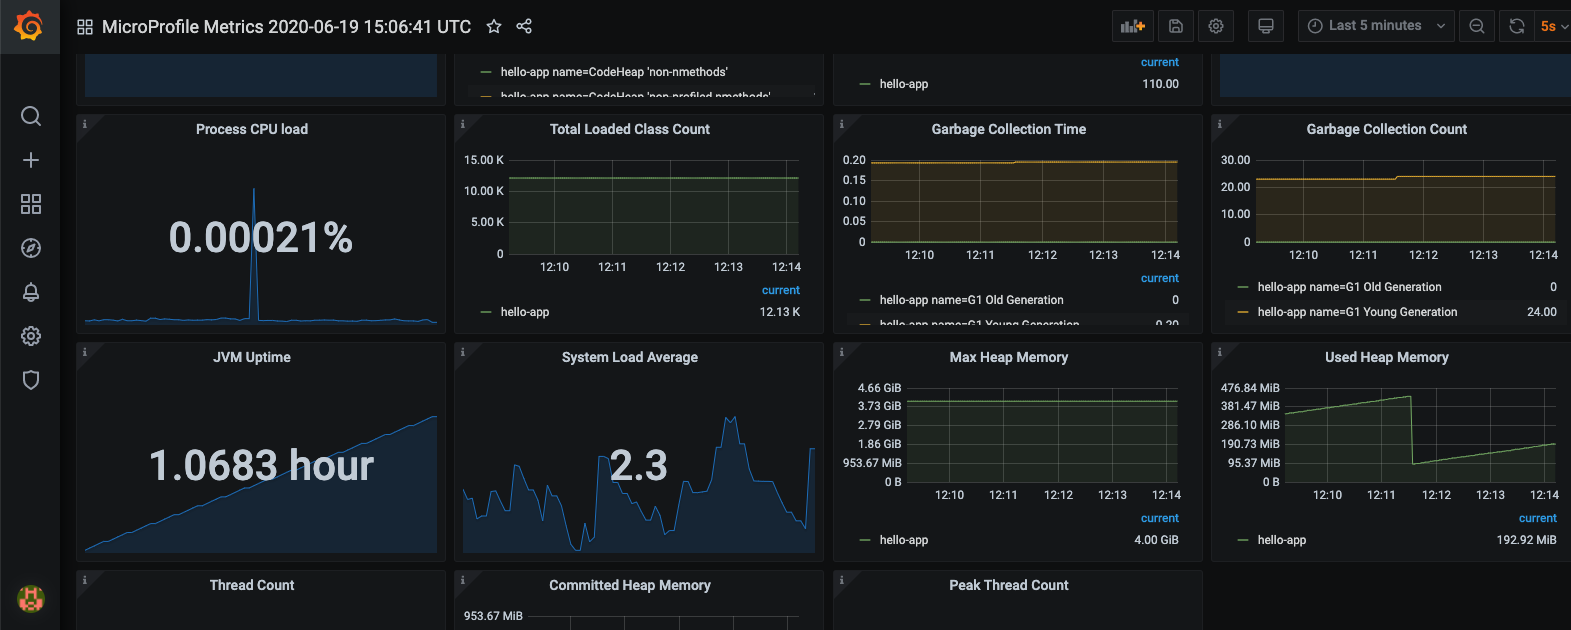 Generate automated Grafana metrics dashboards for MicroProfile apps